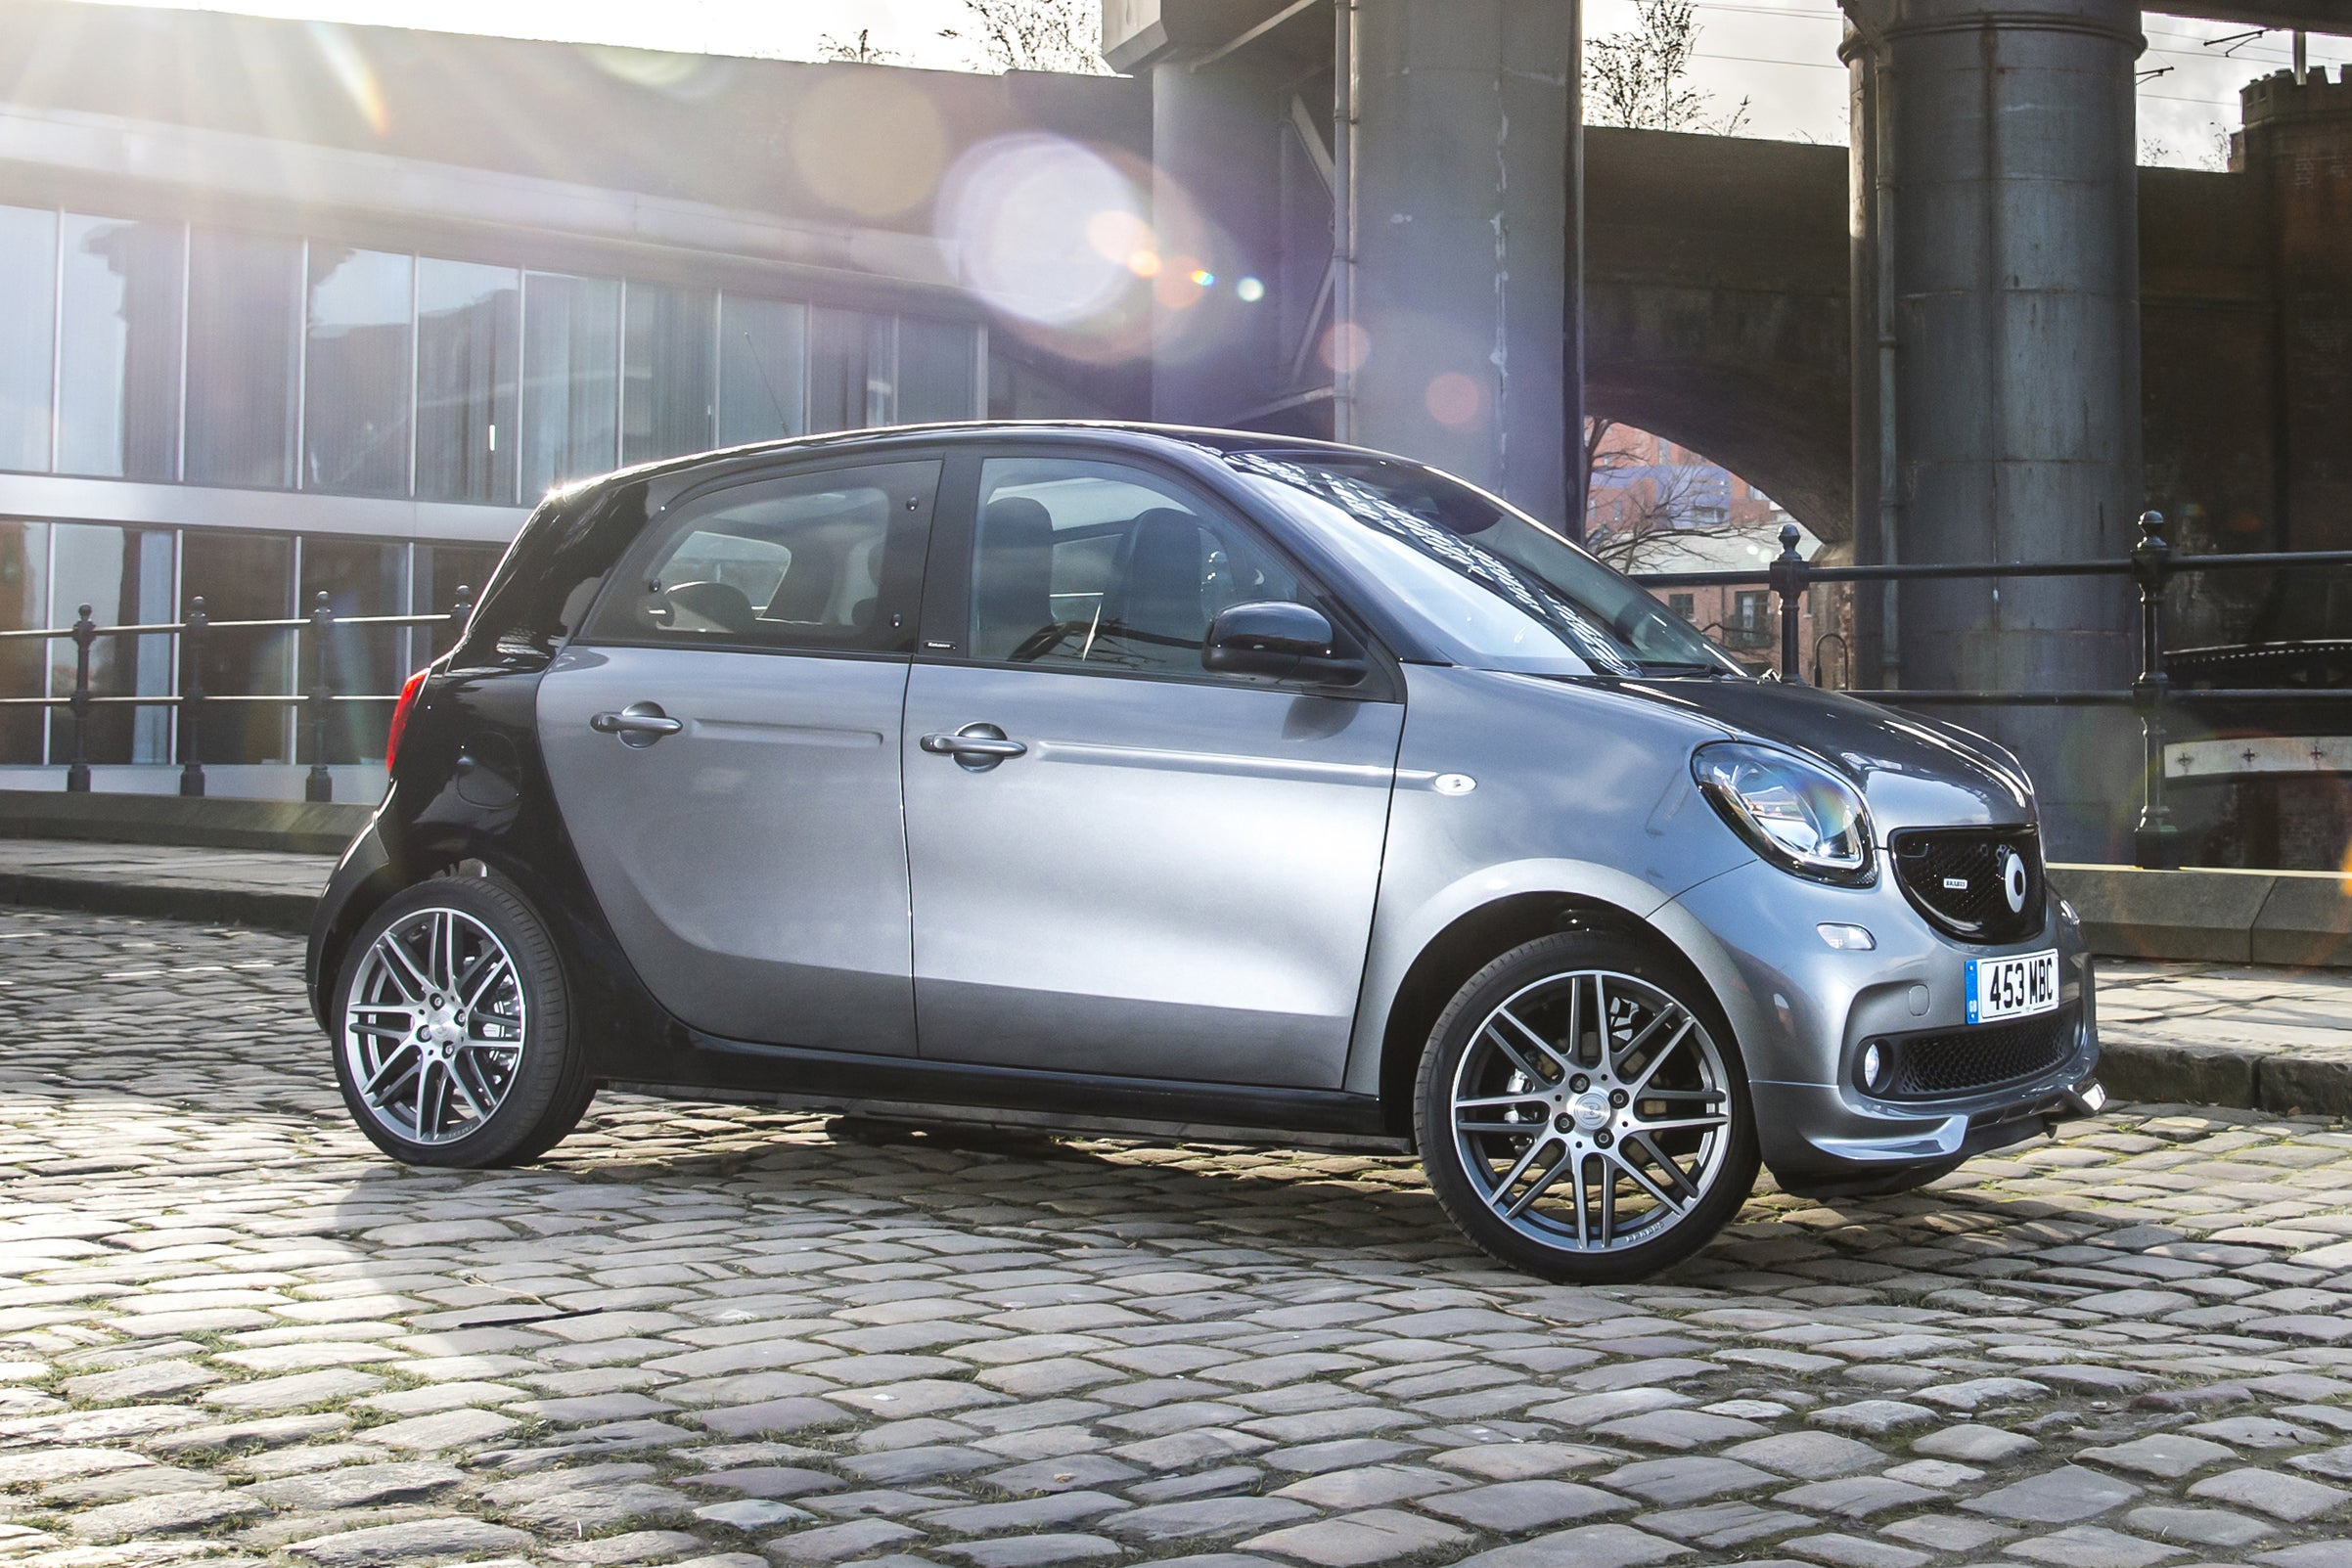 Smart Forfour Right Side View